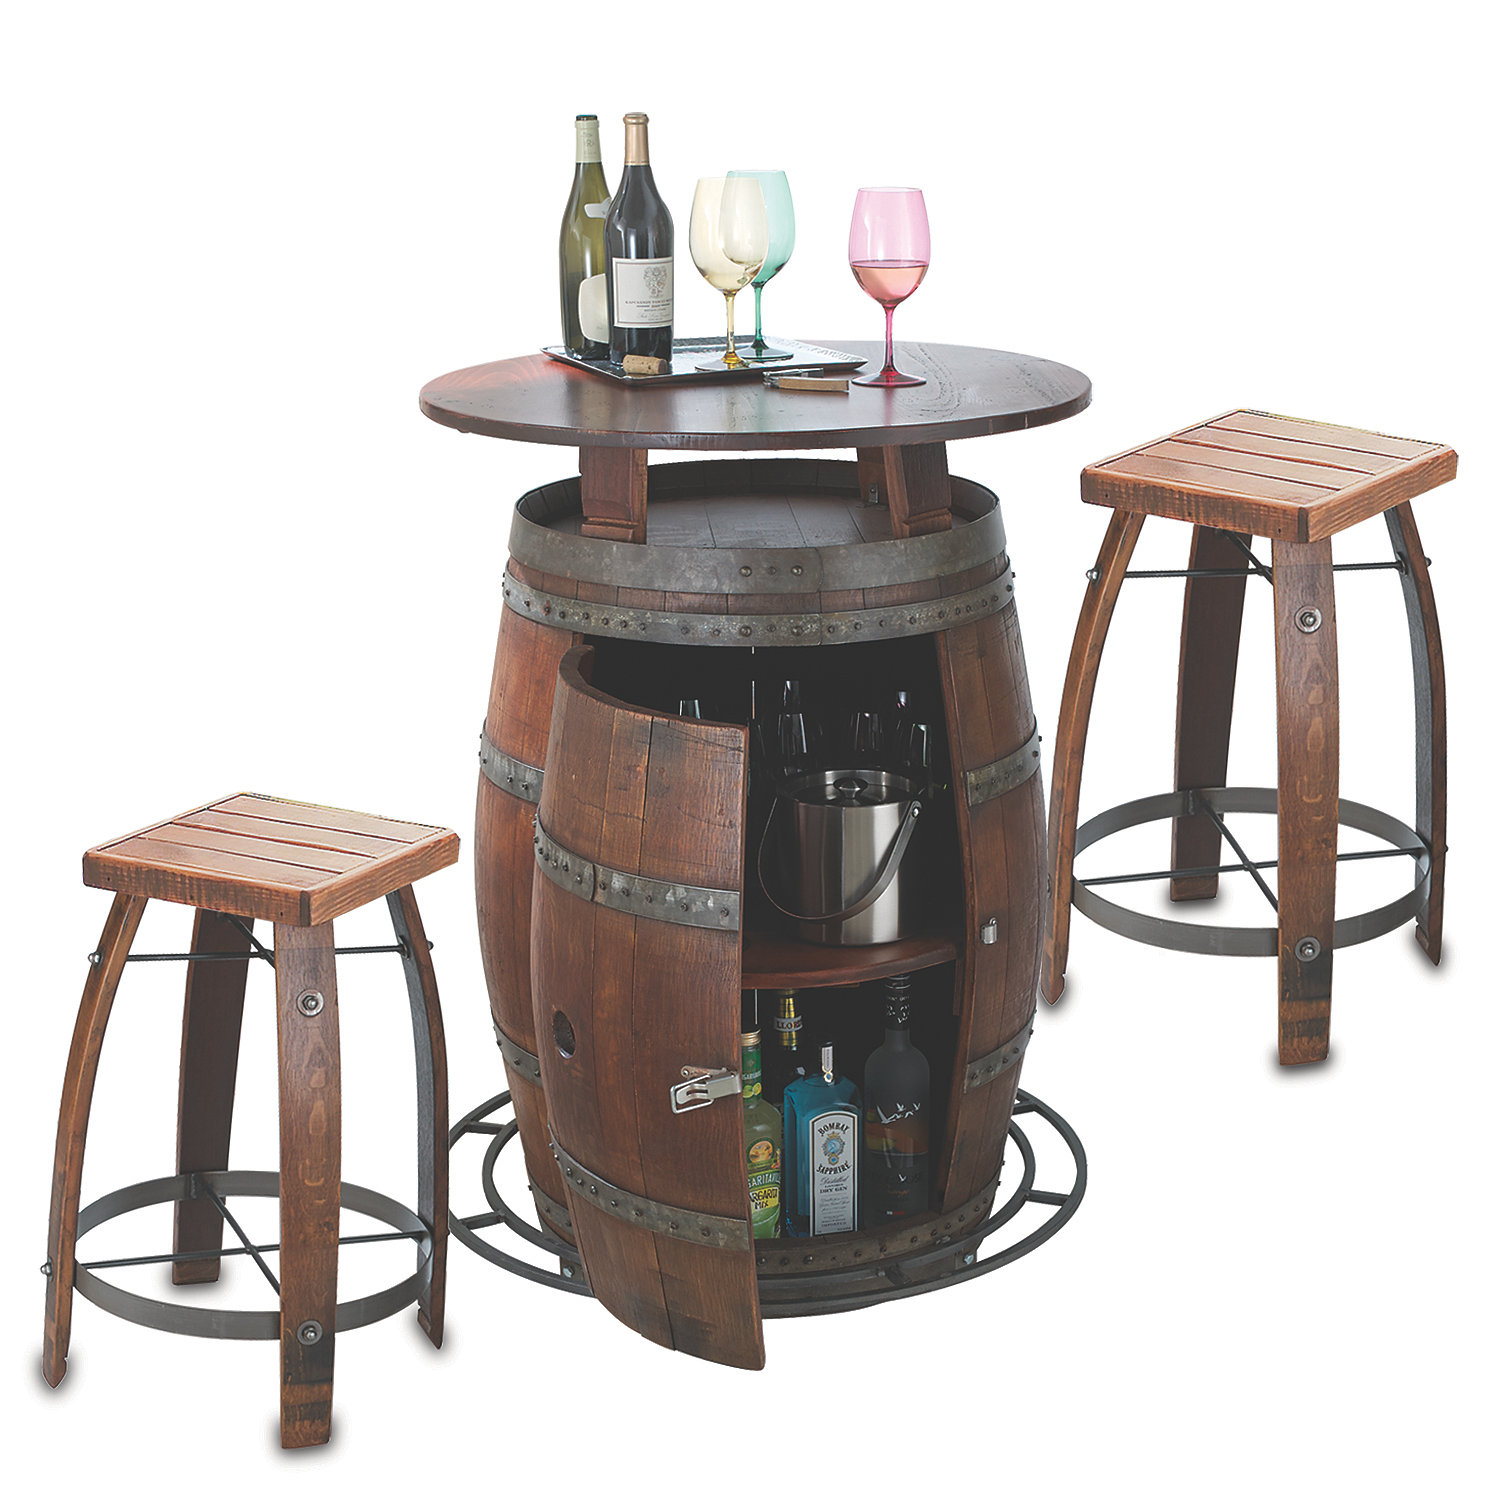 Outdoor Vintage Oak Wine Barrel Bistro Table & Bar Stools Wine